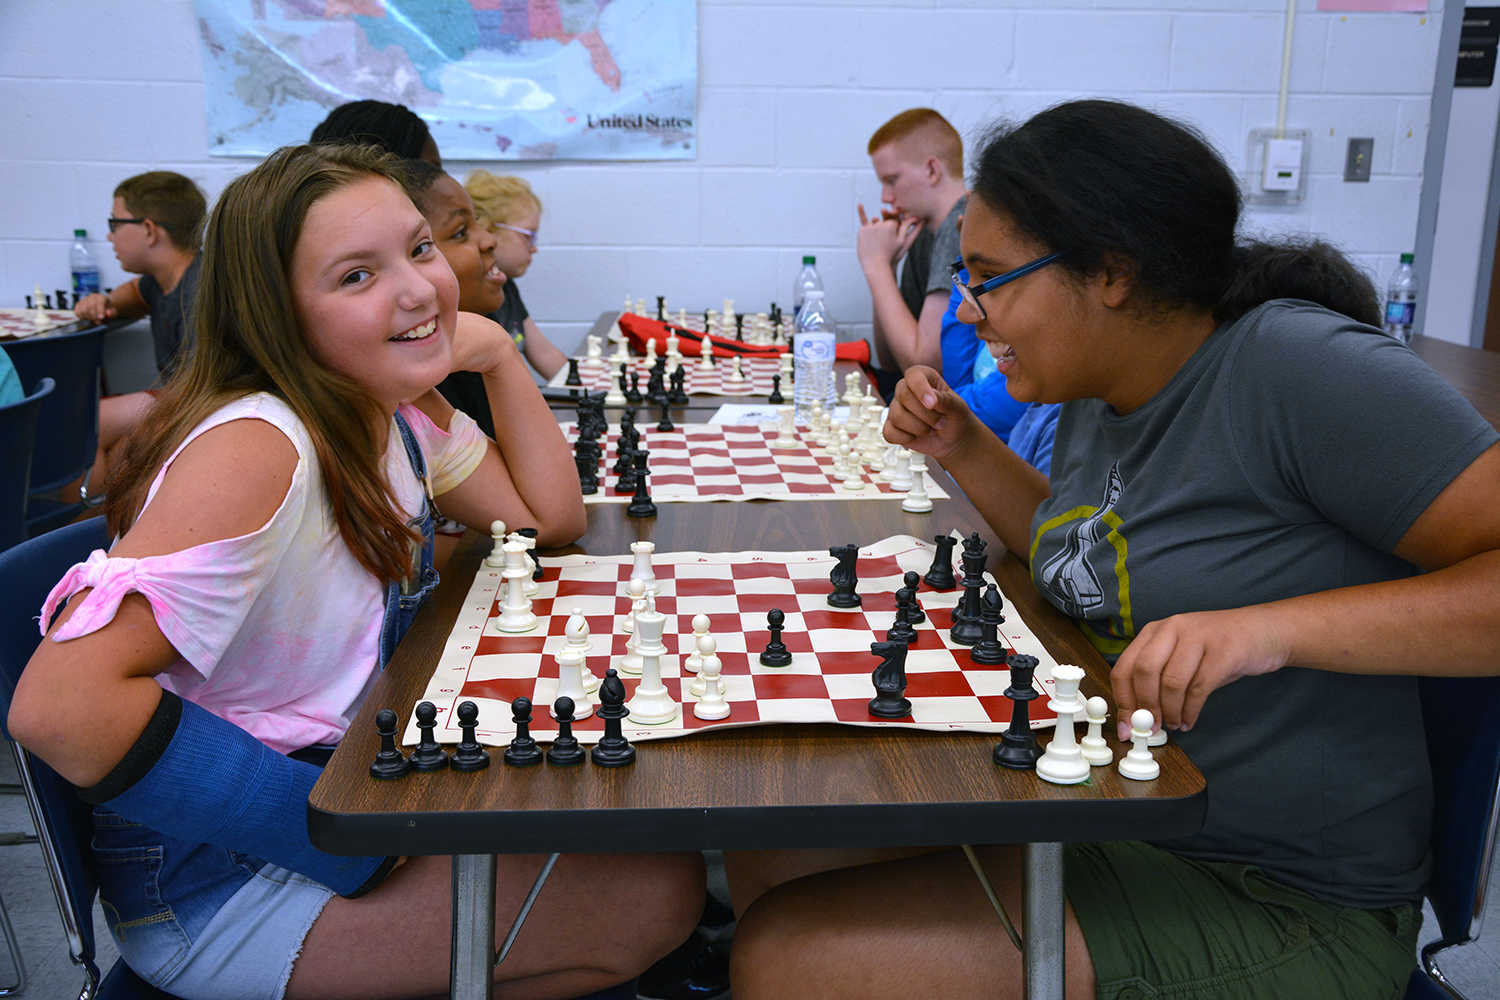 Two girls play chess at a table with other kids in the background